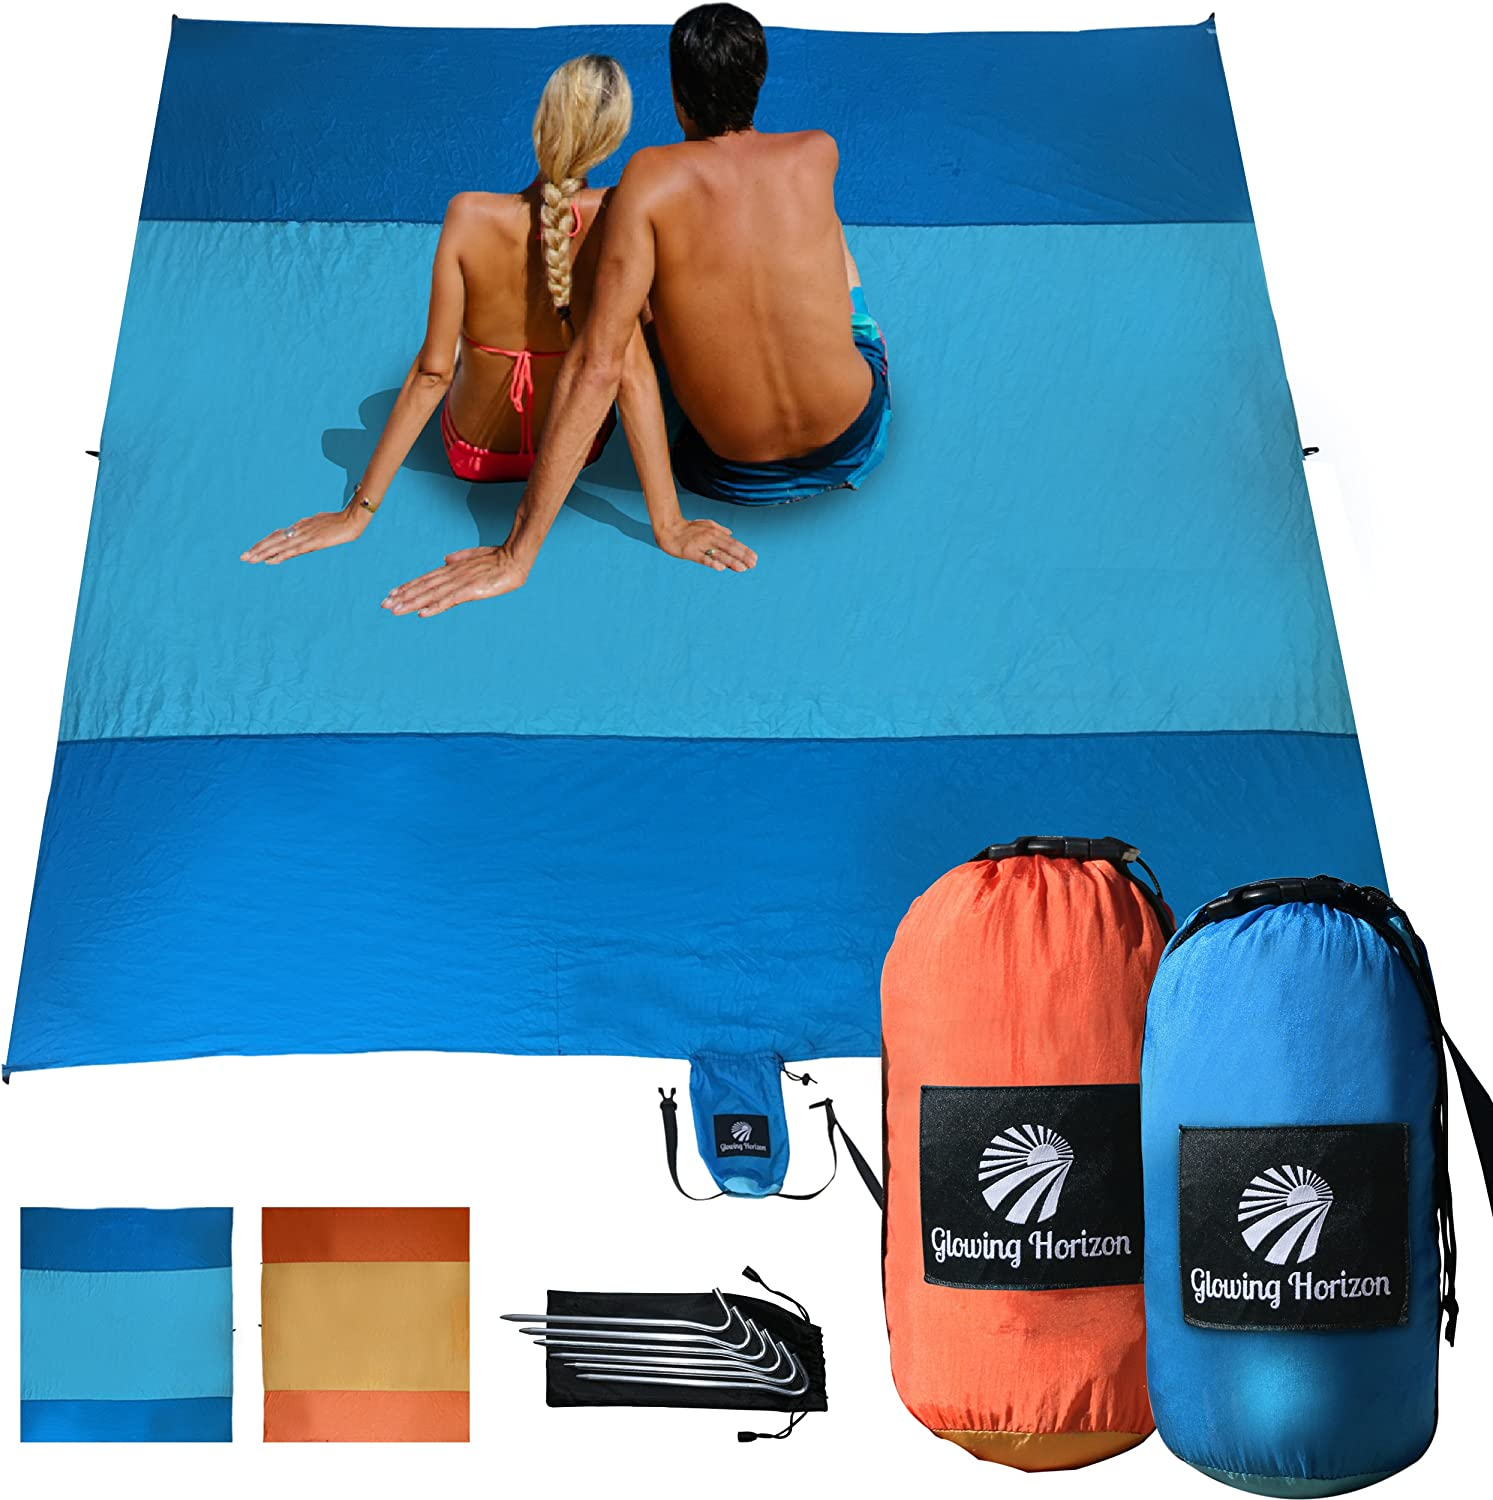 Compact Sand Free Beach Mat Blanket  Extra Large to fit up to 7 Adults (275cm x 300cm) 8 Hidden Sand Pockets + 6 Metal Stakes + Storage Pocket  Quick Drying, Lightweight Strong Nylon